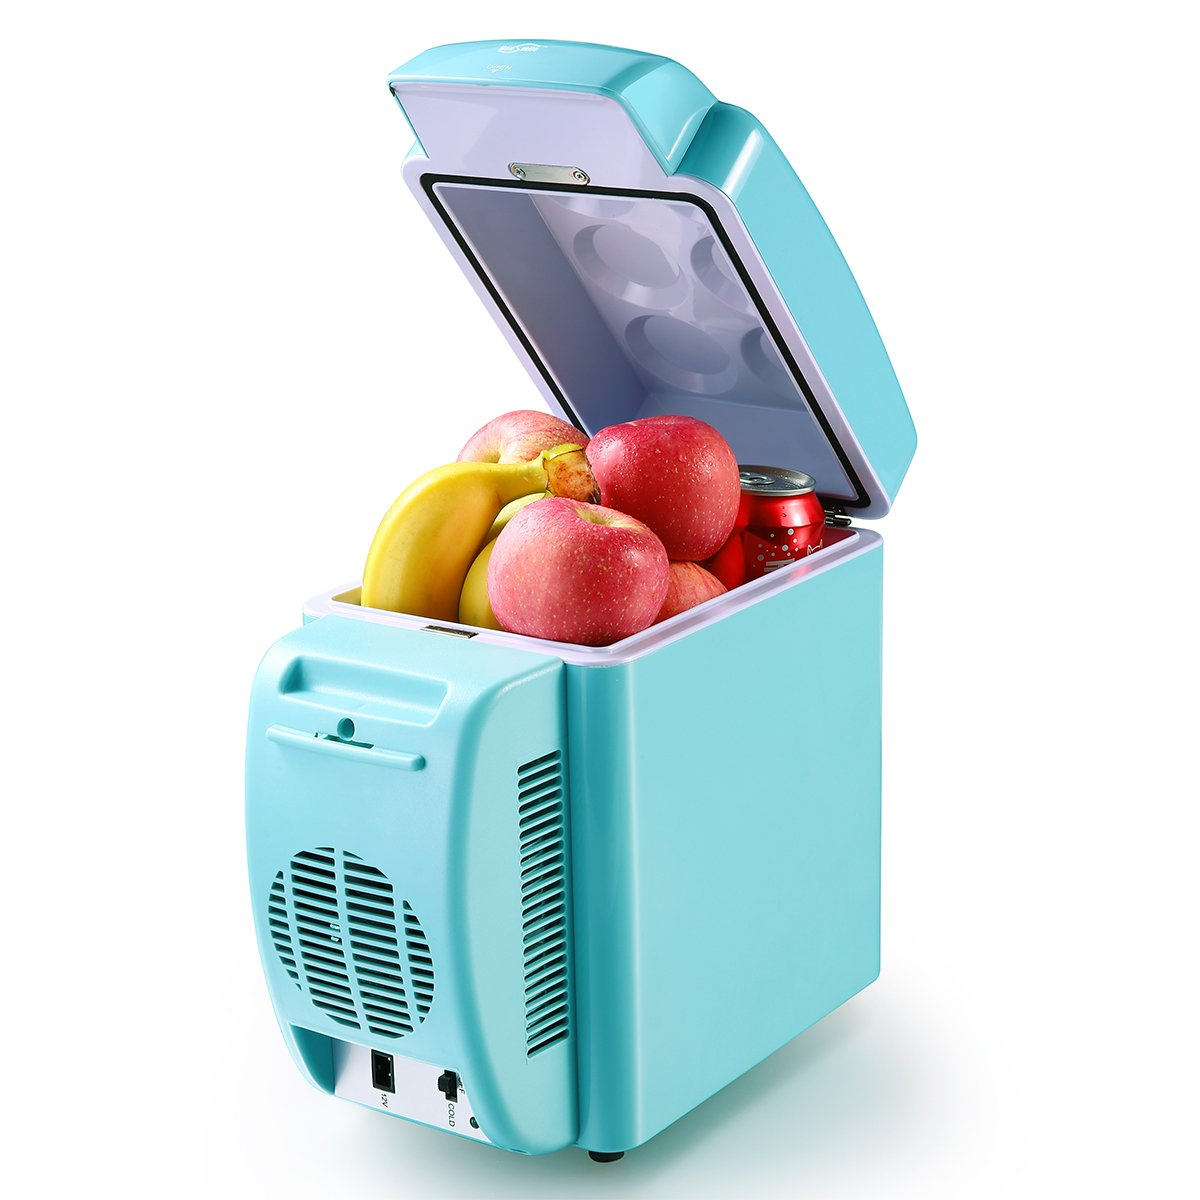 Housmile Thermo - Electric Cooler and Warmer Car Refrigerator Portable Mini Fridge, DC 12V, 7 Liter HO-CW07UR